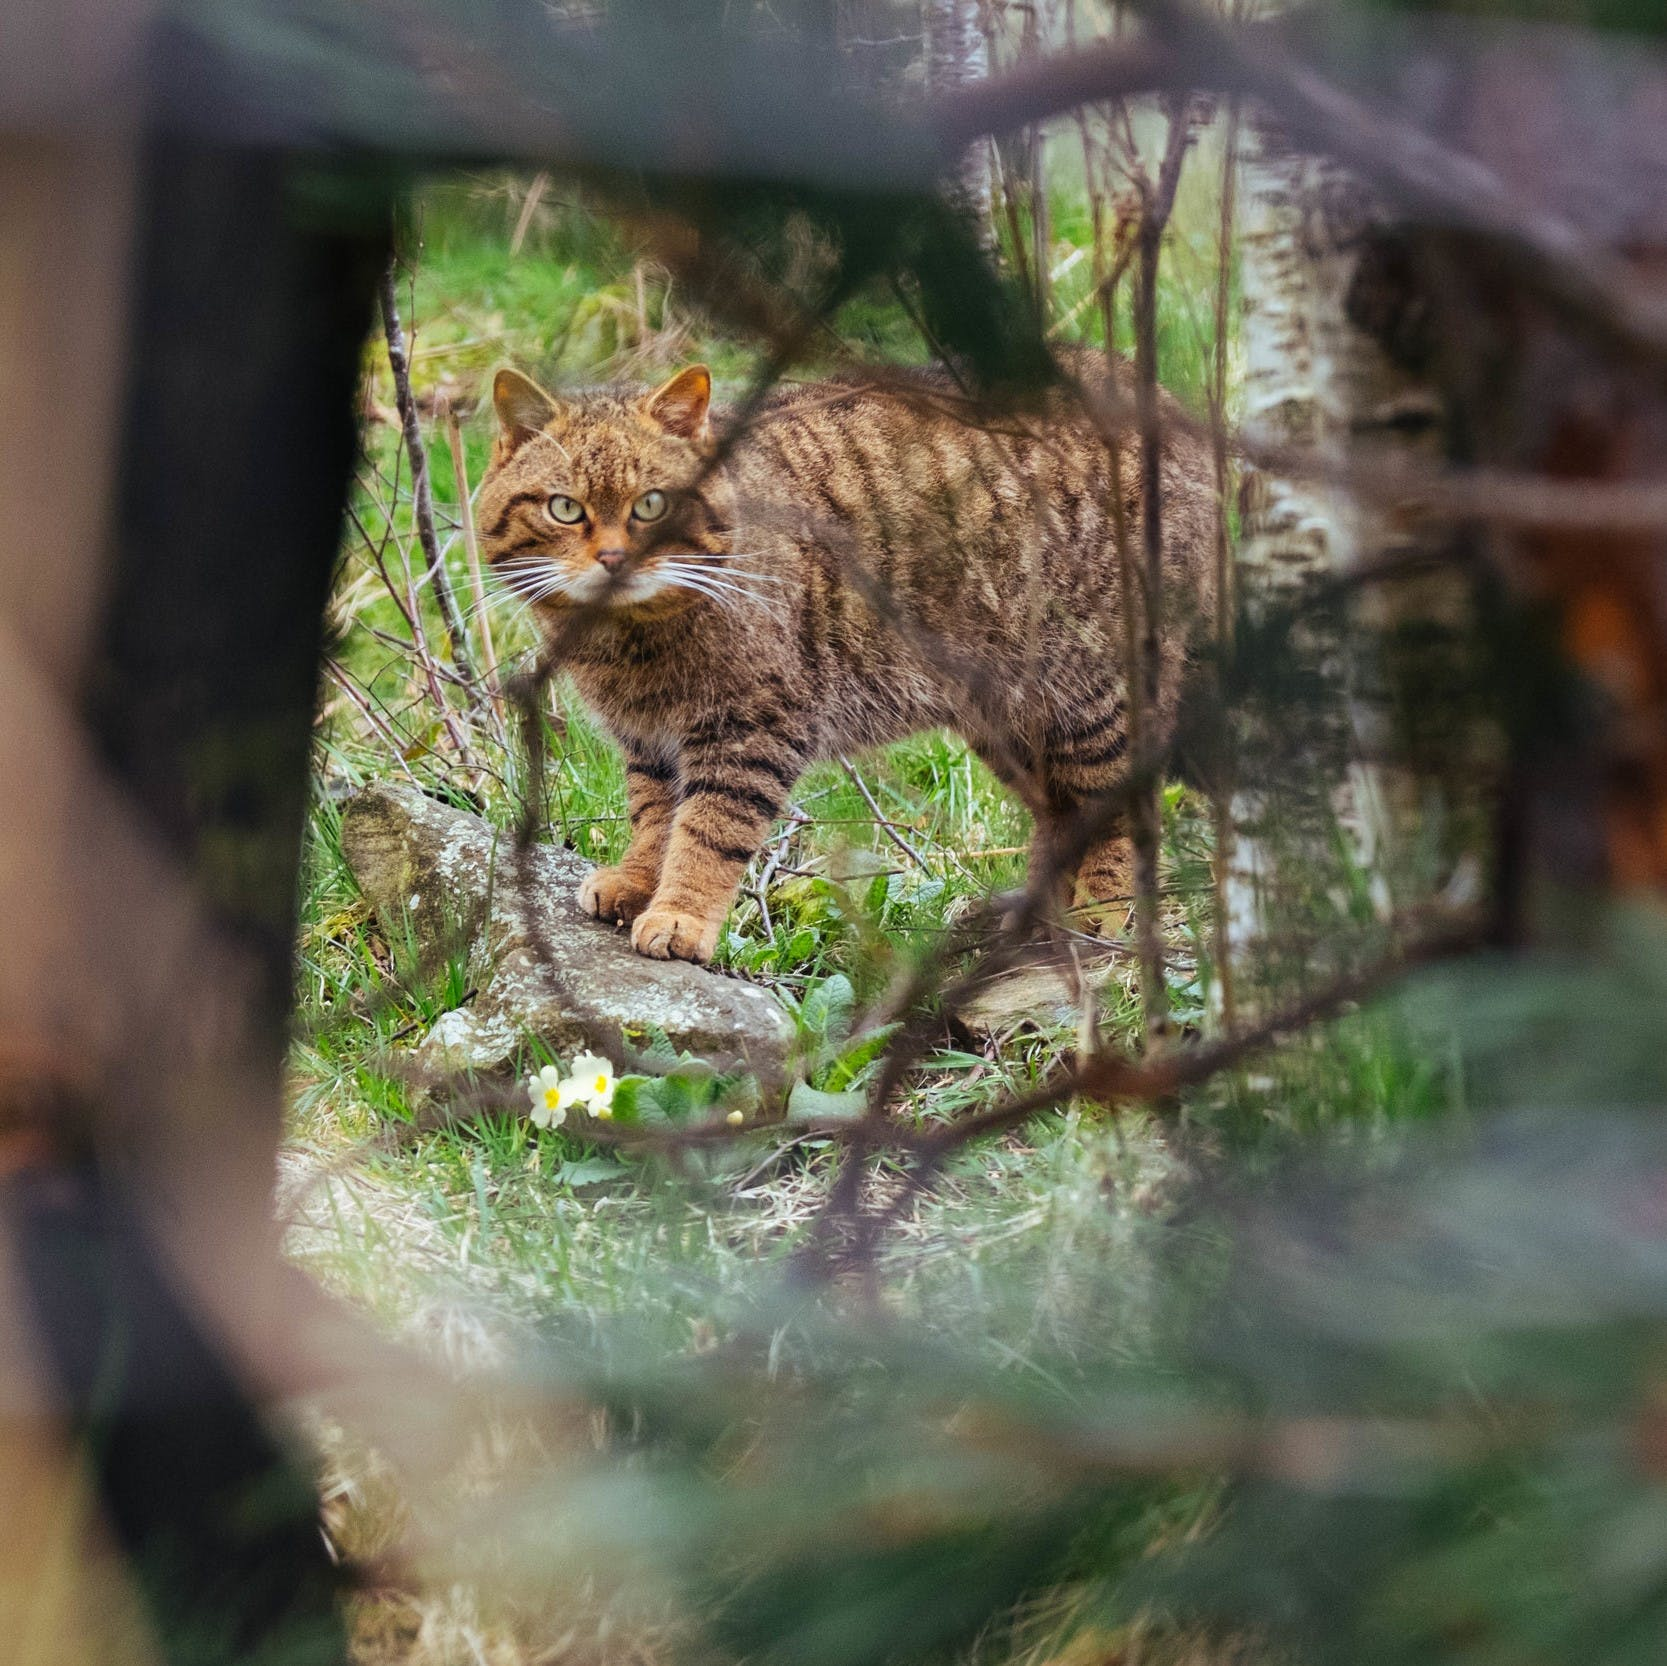 A rare image of the critically endangered Scottish wildcat.